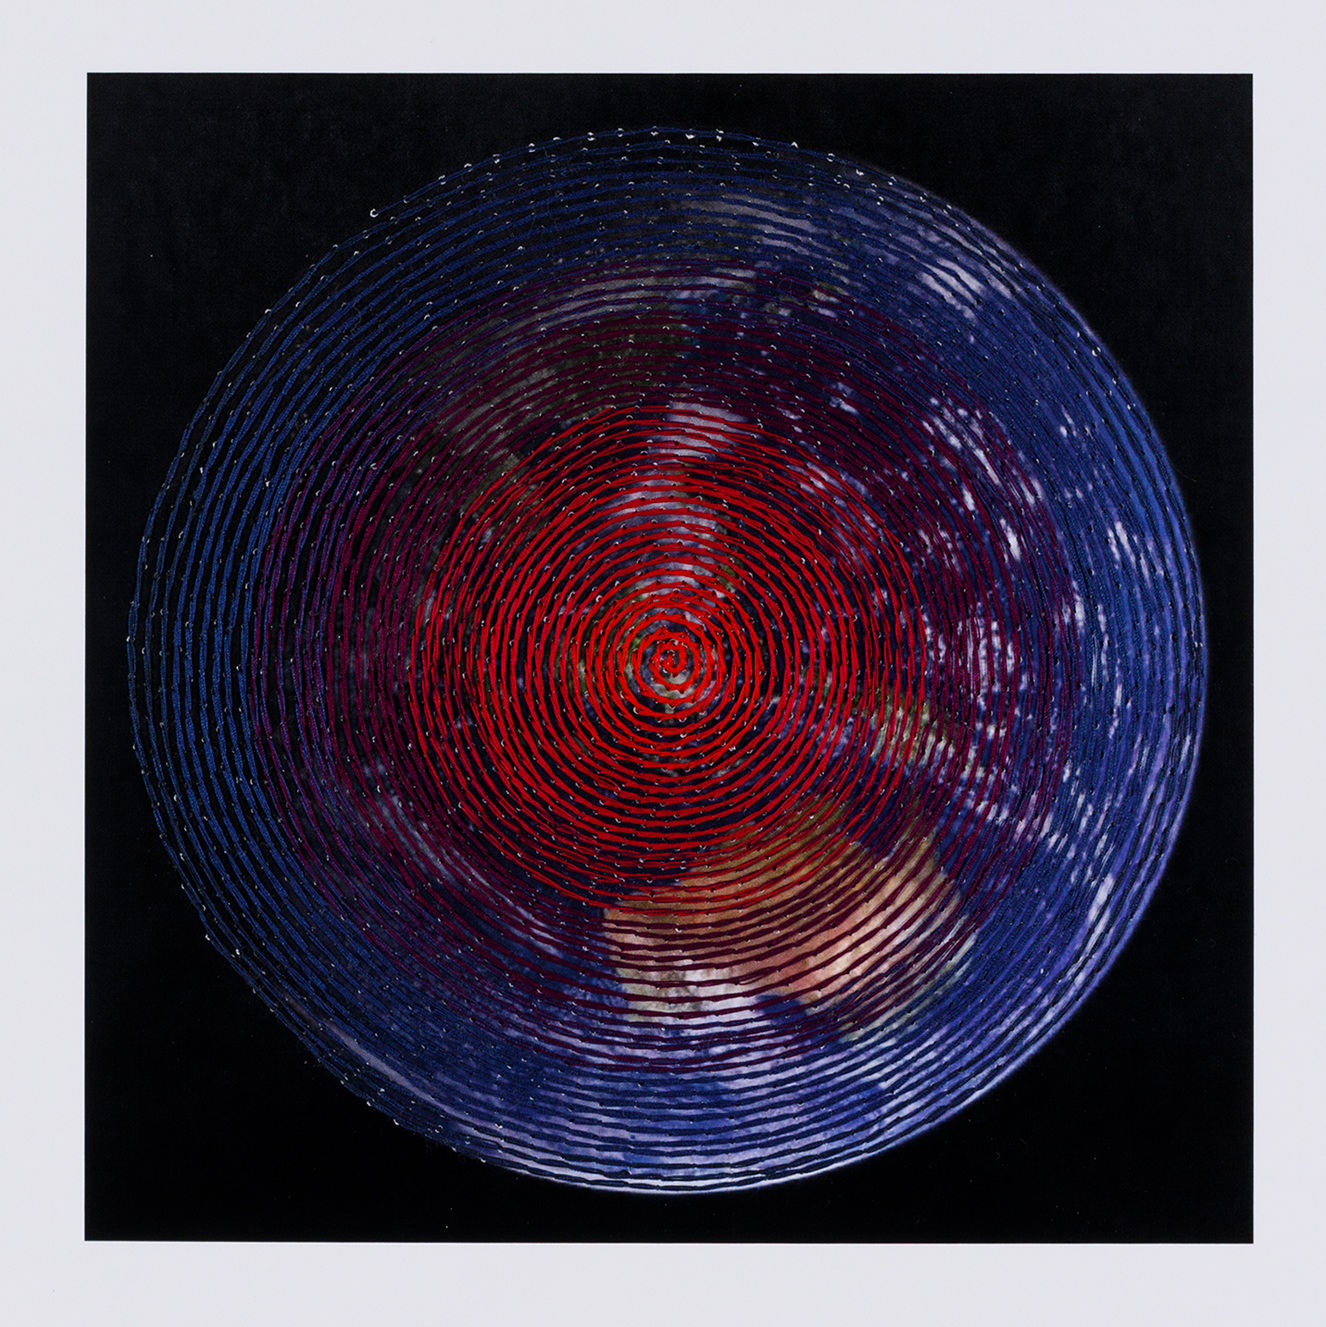 Covid Quilt - spiral (front) 15.5 x 15.5 cm, Cotton thread on paper, 2020 (Lockdown 1).